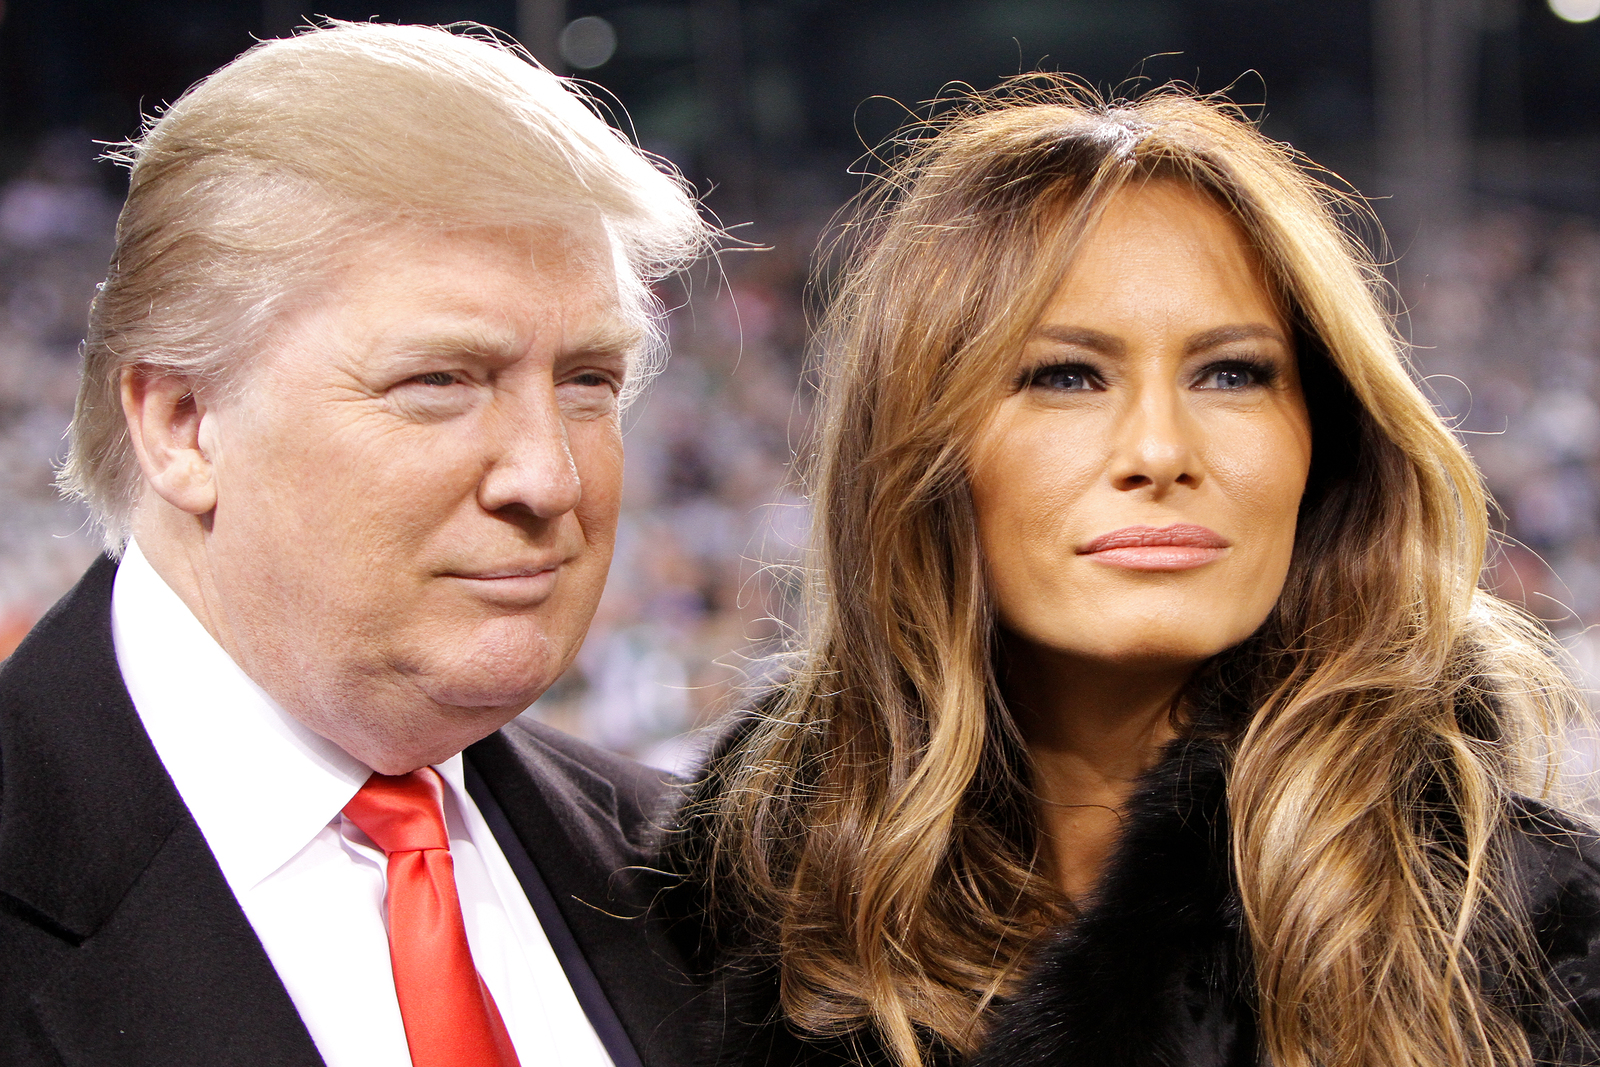 What You & Melania Trump May Have In Common